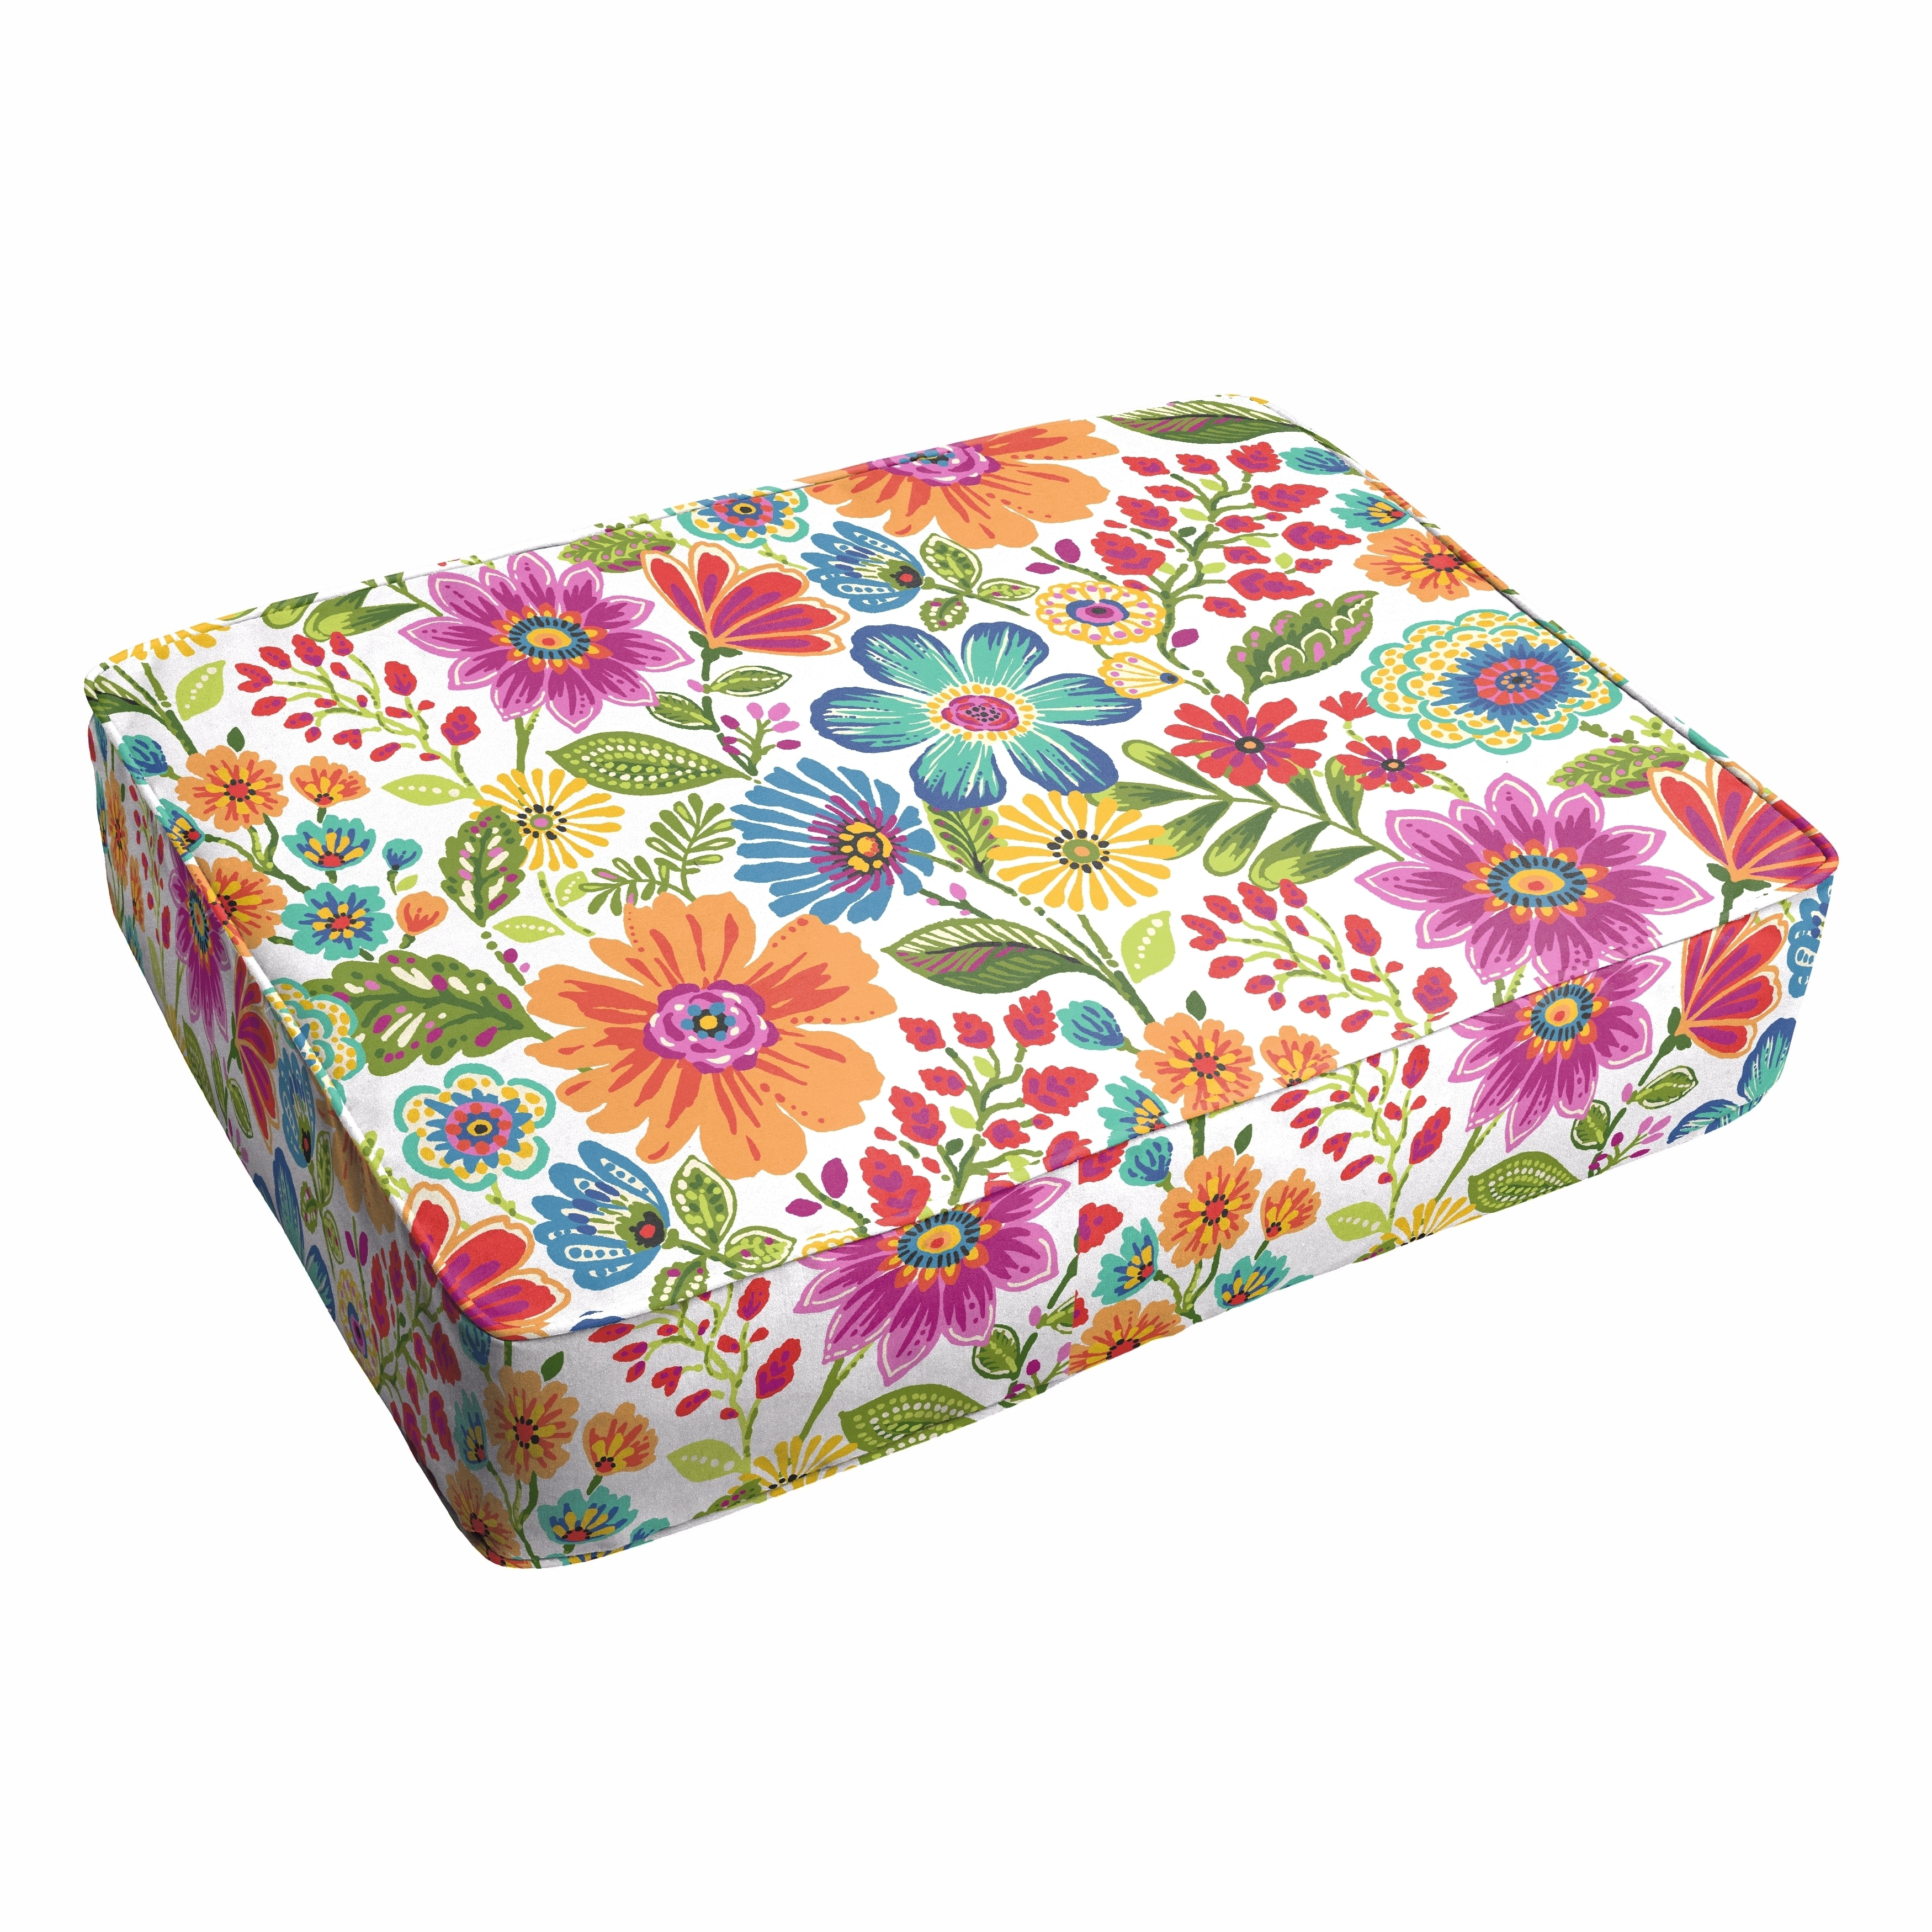 Humble and Haute Galliford Multi Floral Indoor/ Outdoor 18 x 29 Inch Corded Floor Cushion